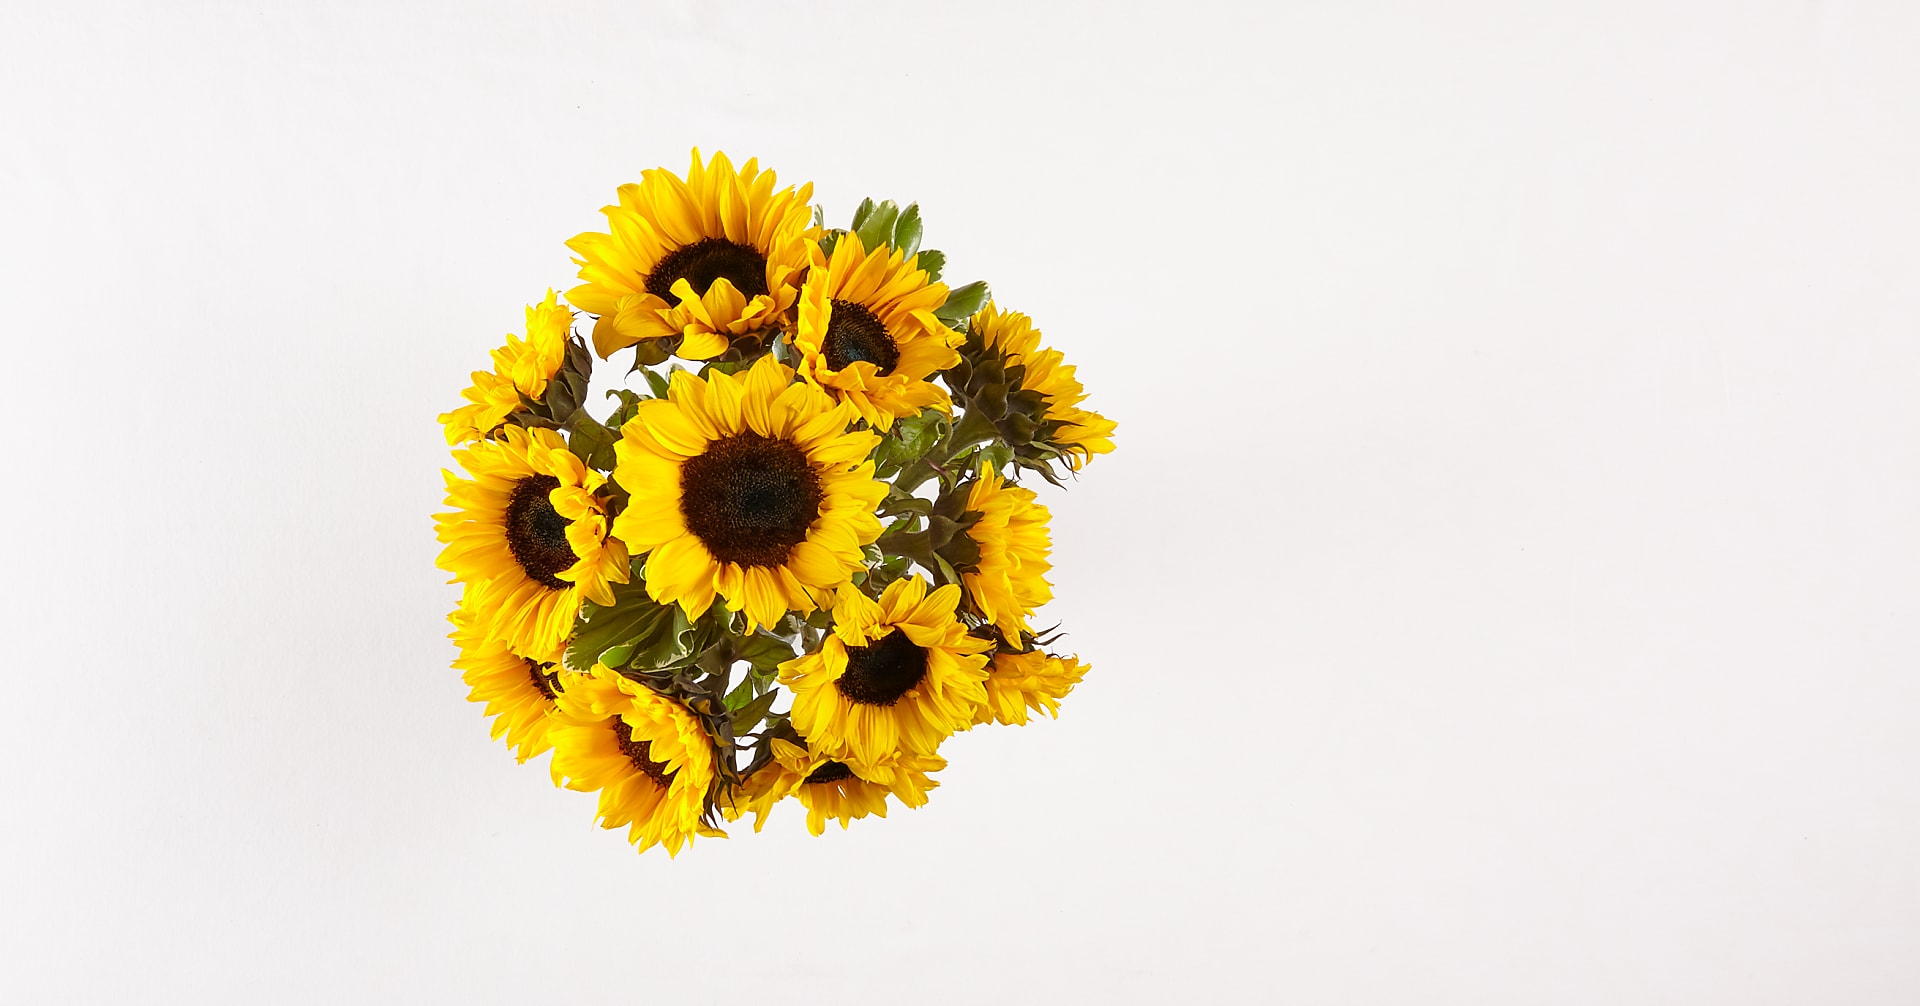 Honey Bee Sunflower Bouquet - Image 3 Of 5